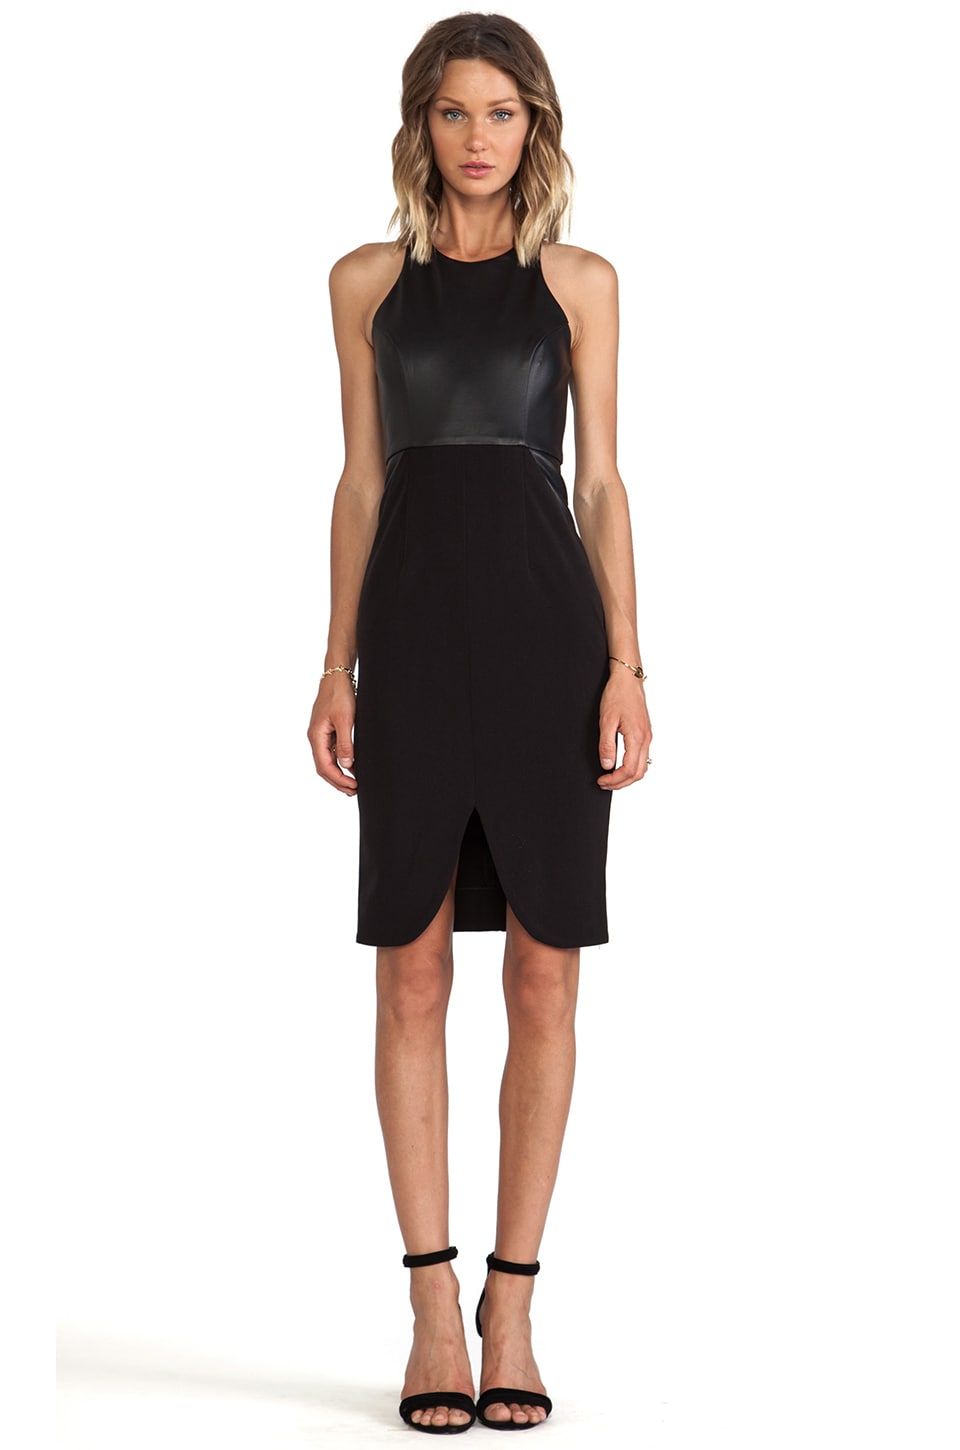 Shona Joy Derailed Midi Dress in Black